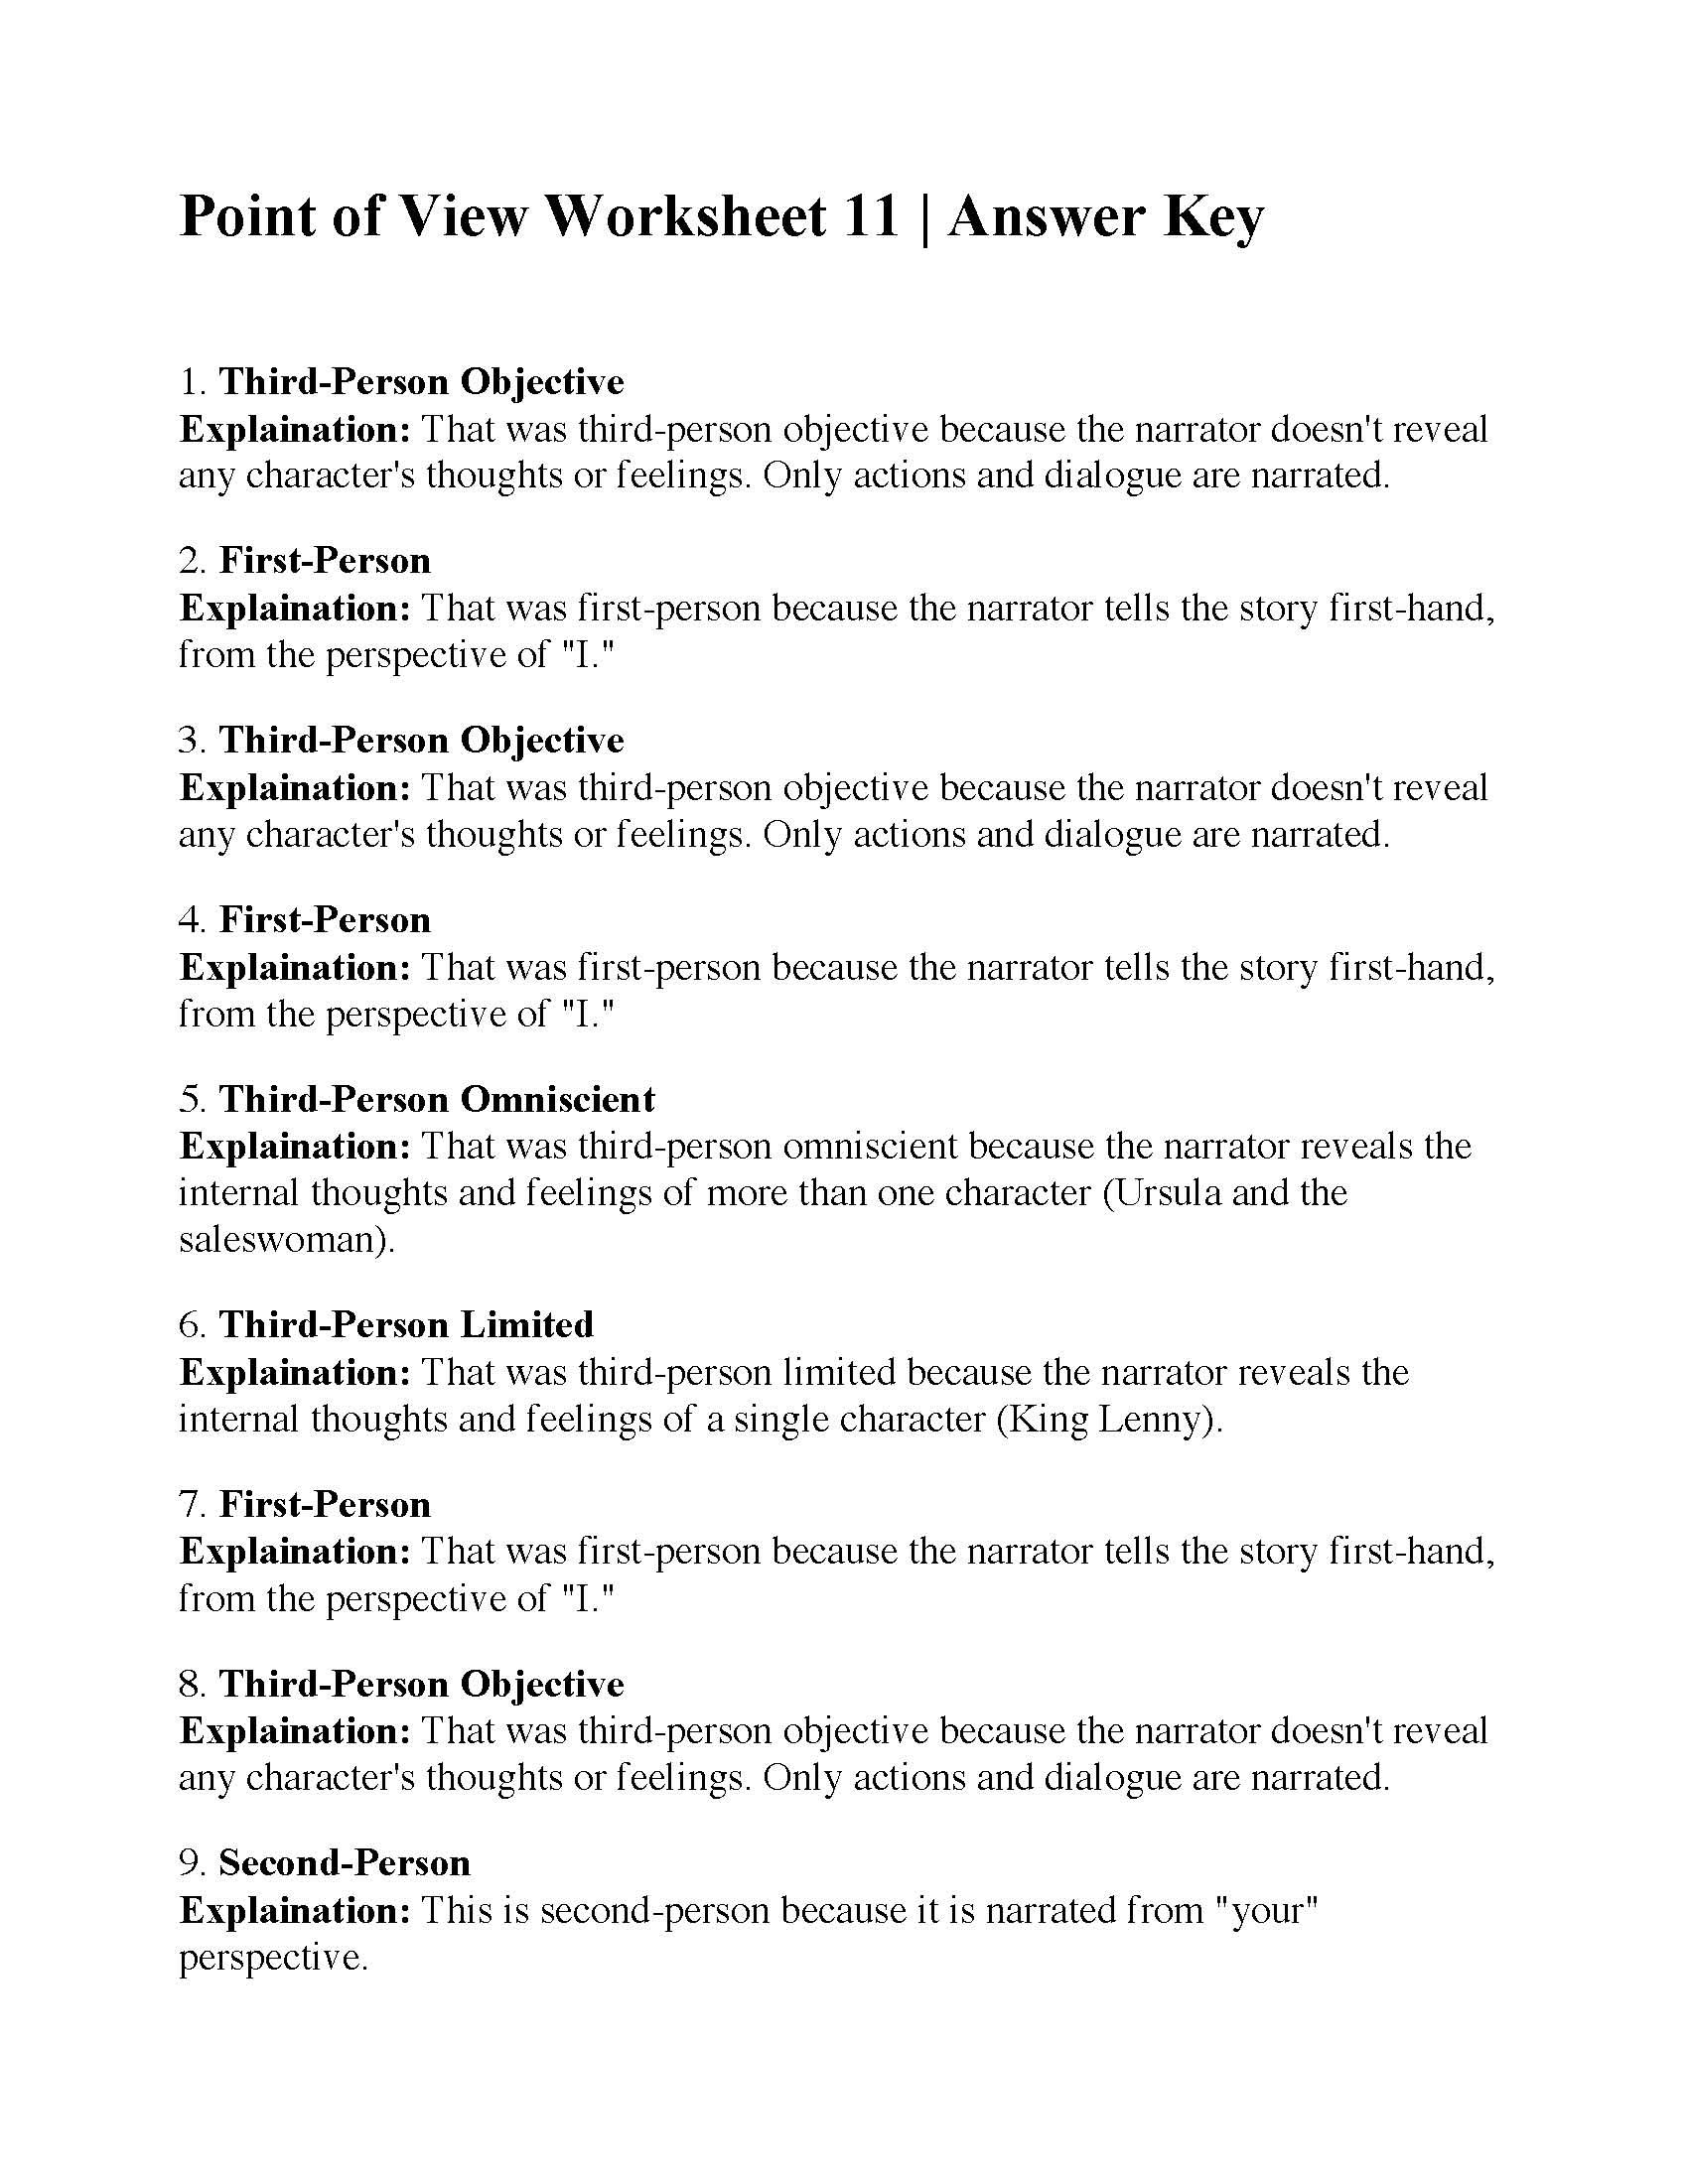 Business Point Of View Worksheet